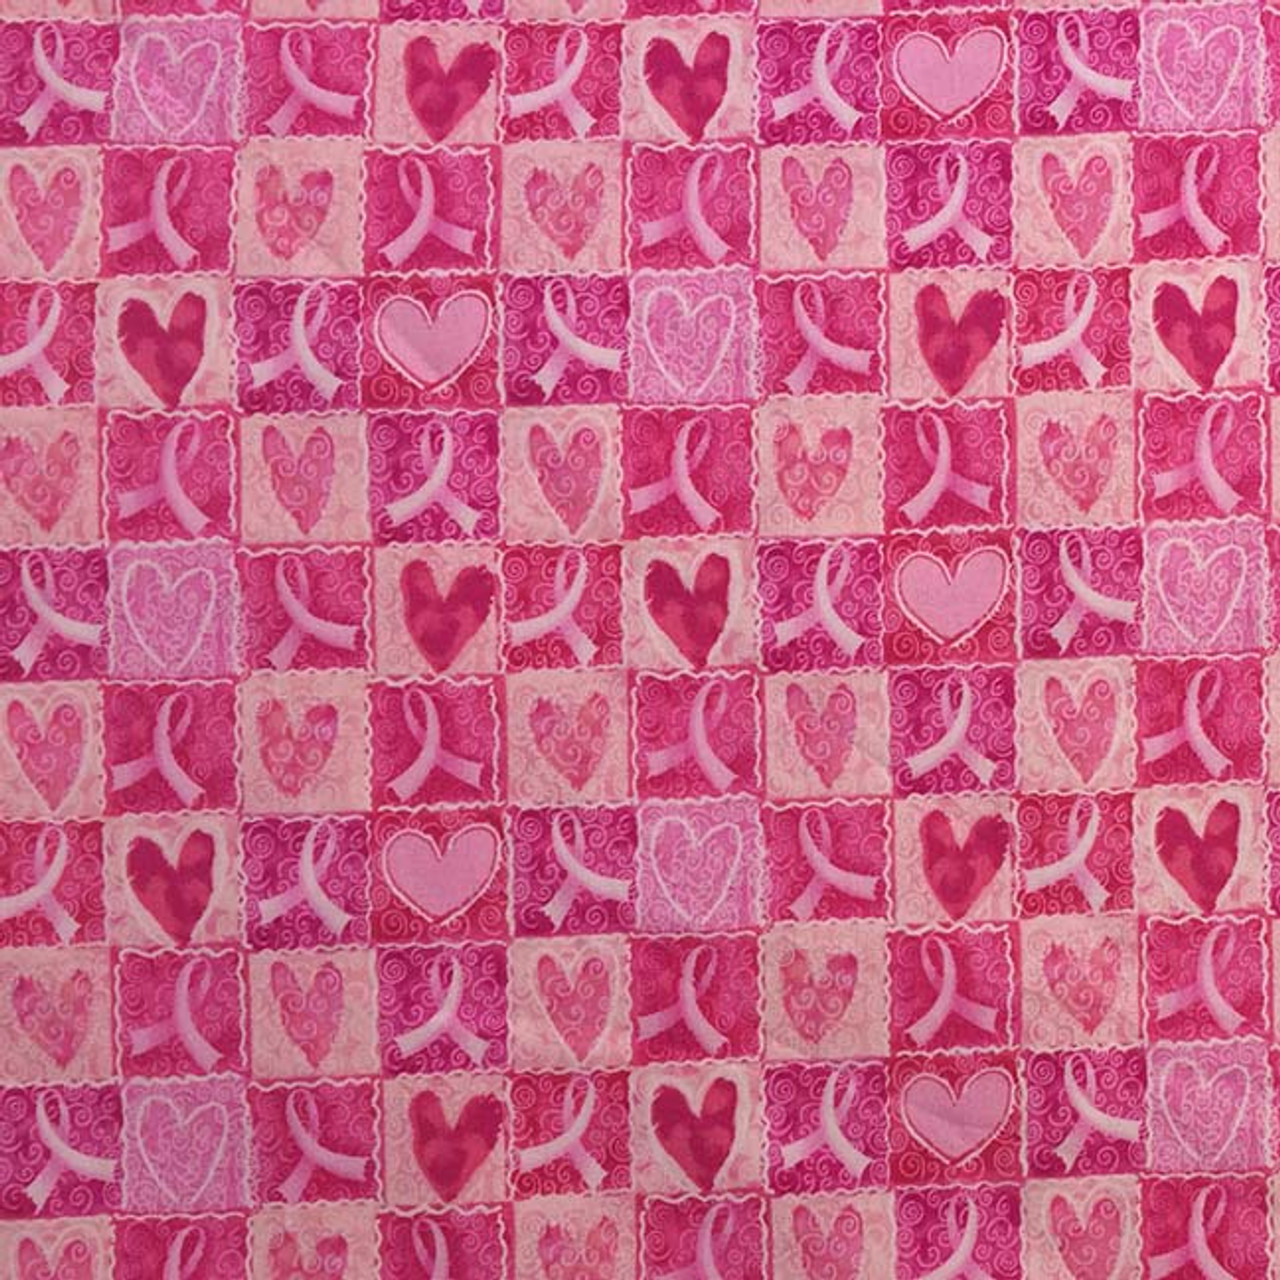 Pretty Pink Hearts and Ribbons on a Pink background - Outer Cover for your Microwave Corn Bag Heating Pad. Breast cancer awareness.